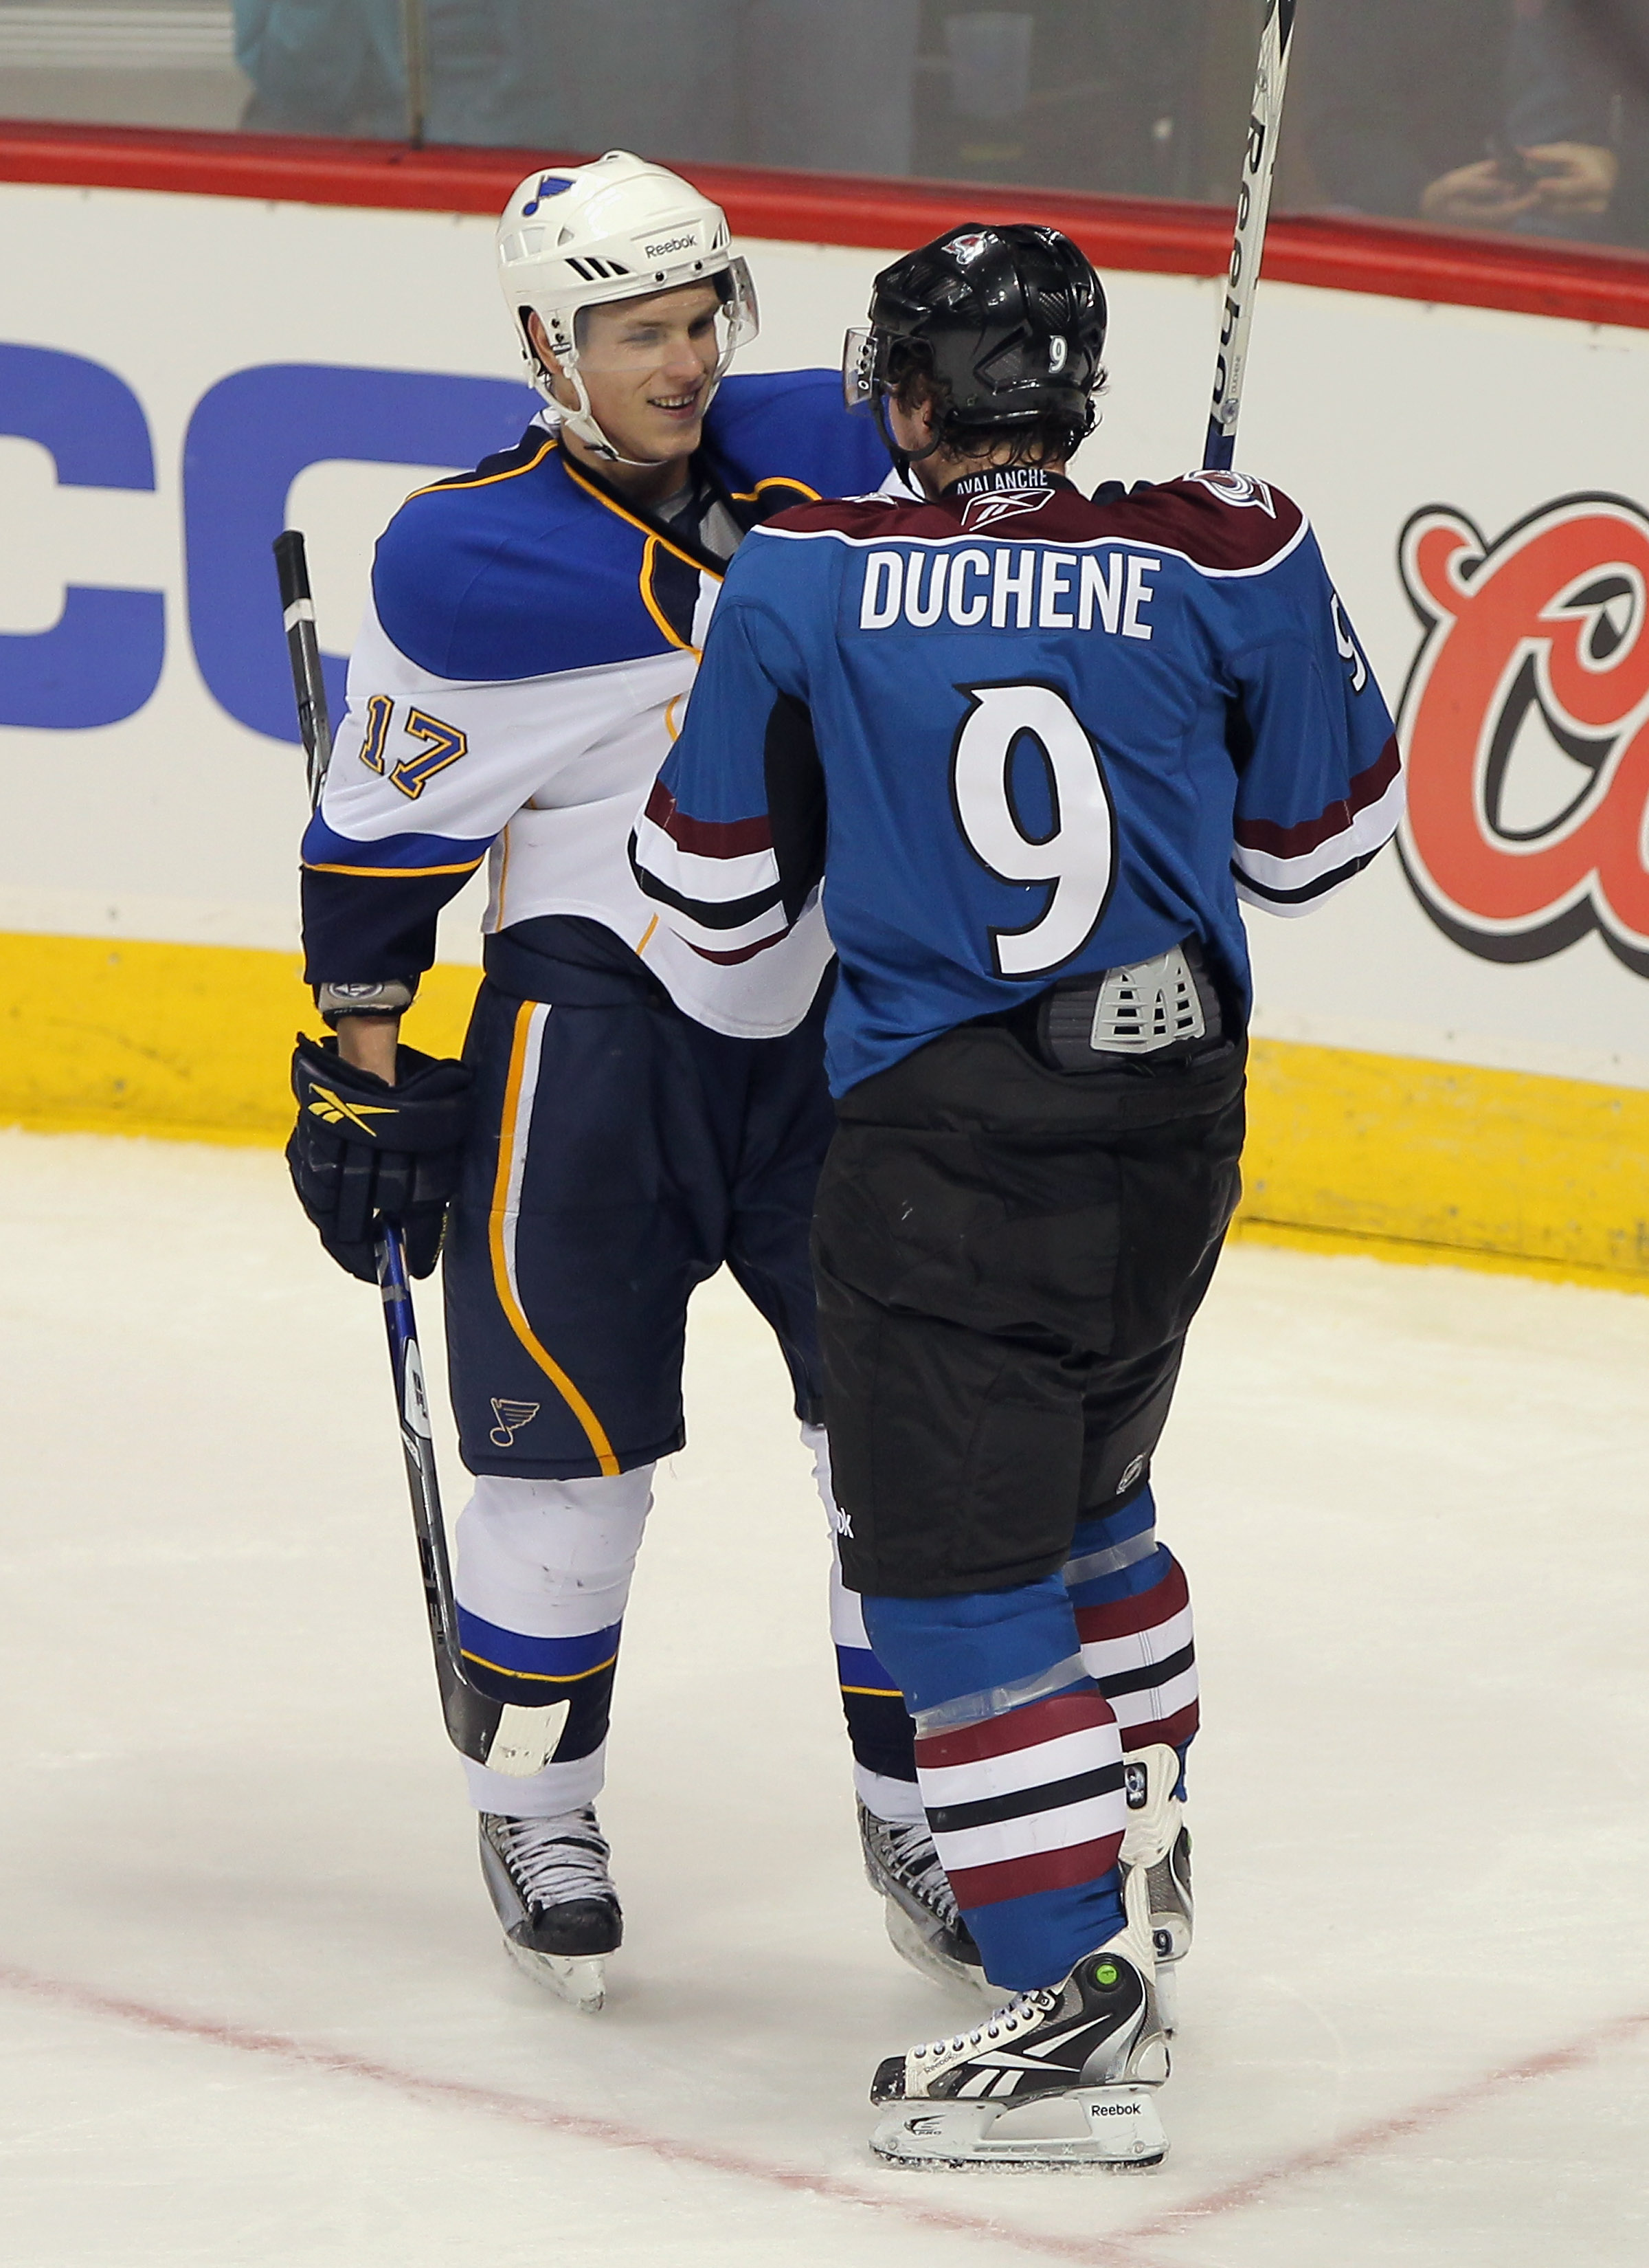 DENVER - NOVEMBER 15:  Matt Duchene #9 of the Colorado Avalanche and Vladimir Sobotka #17 of the St. Louis Blues have words with one another just before they started fighting in the third period at the Pepsi Center on November 15, 2010 in Denver, Colorado